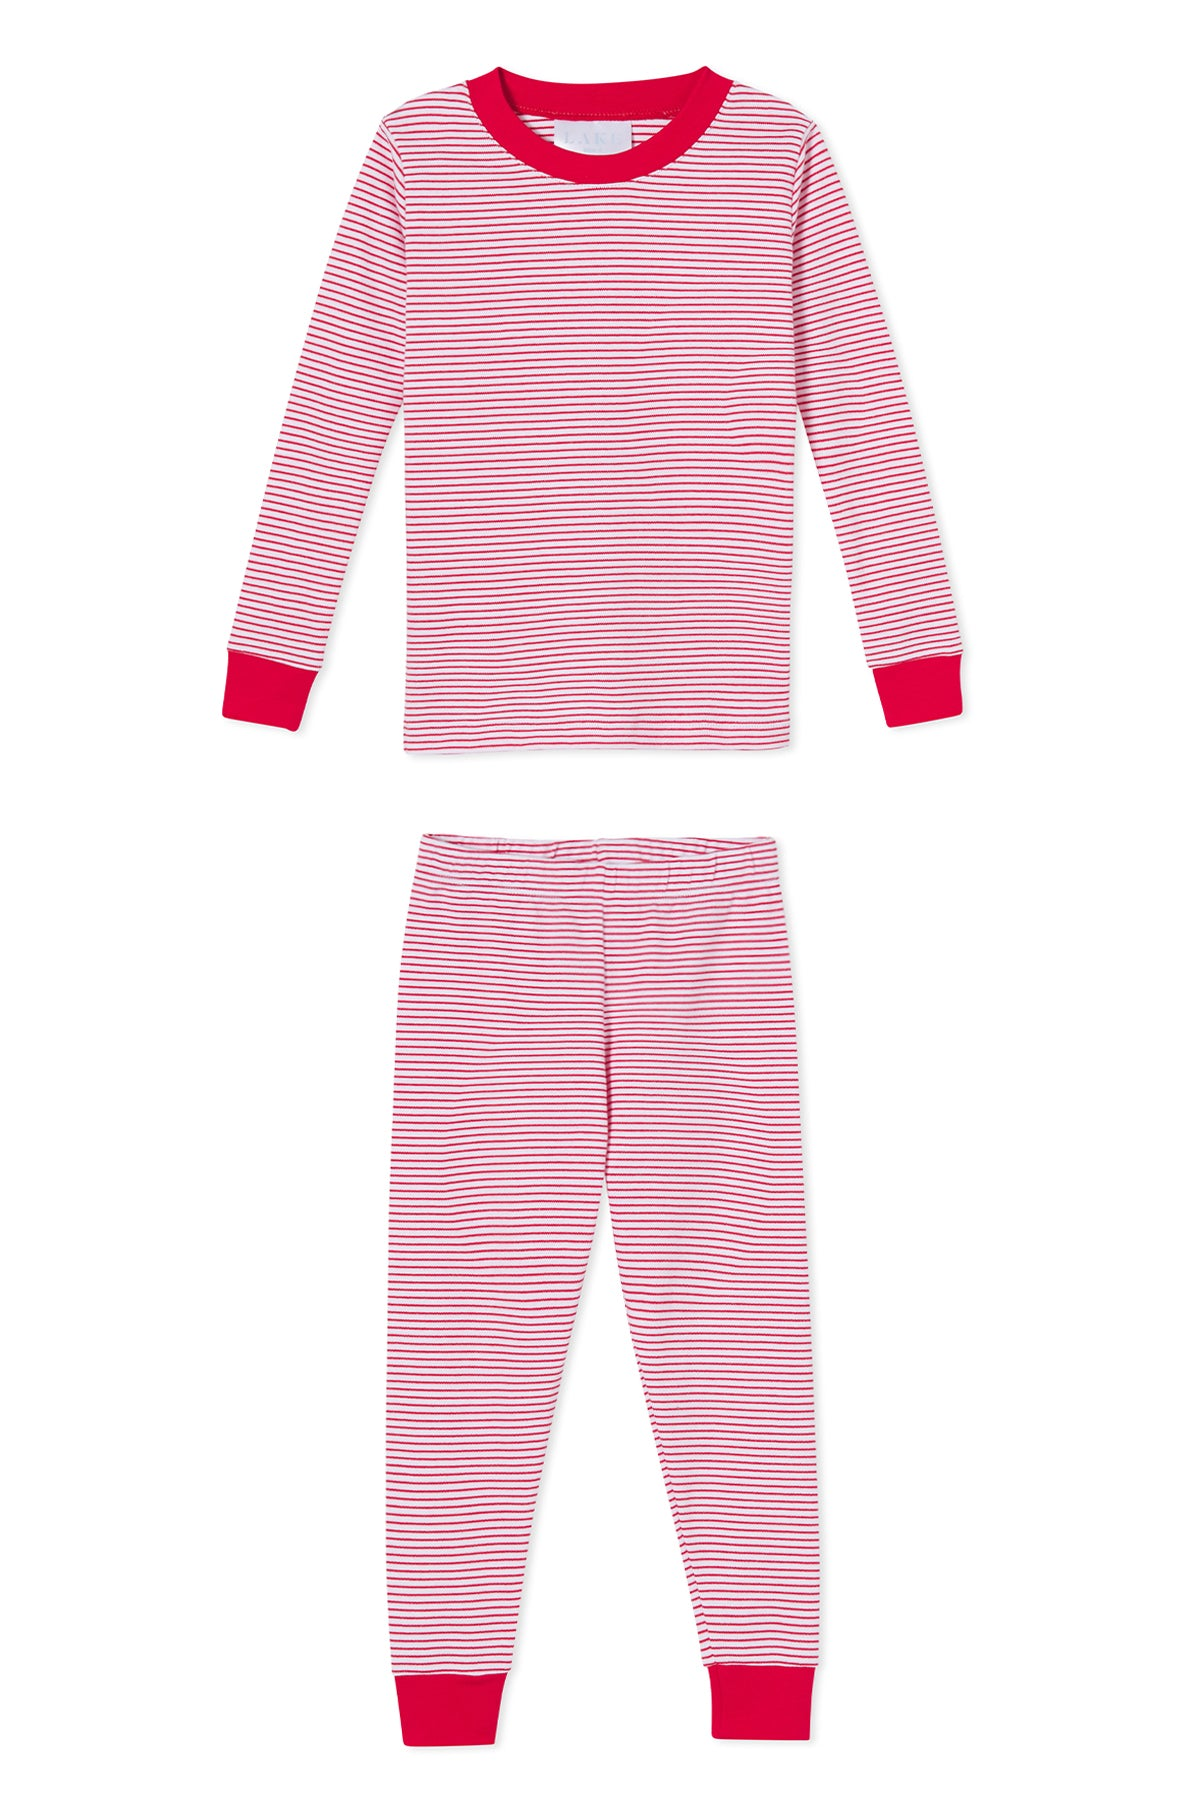 Pre-Order Kids Long-Long Set in Classic Red